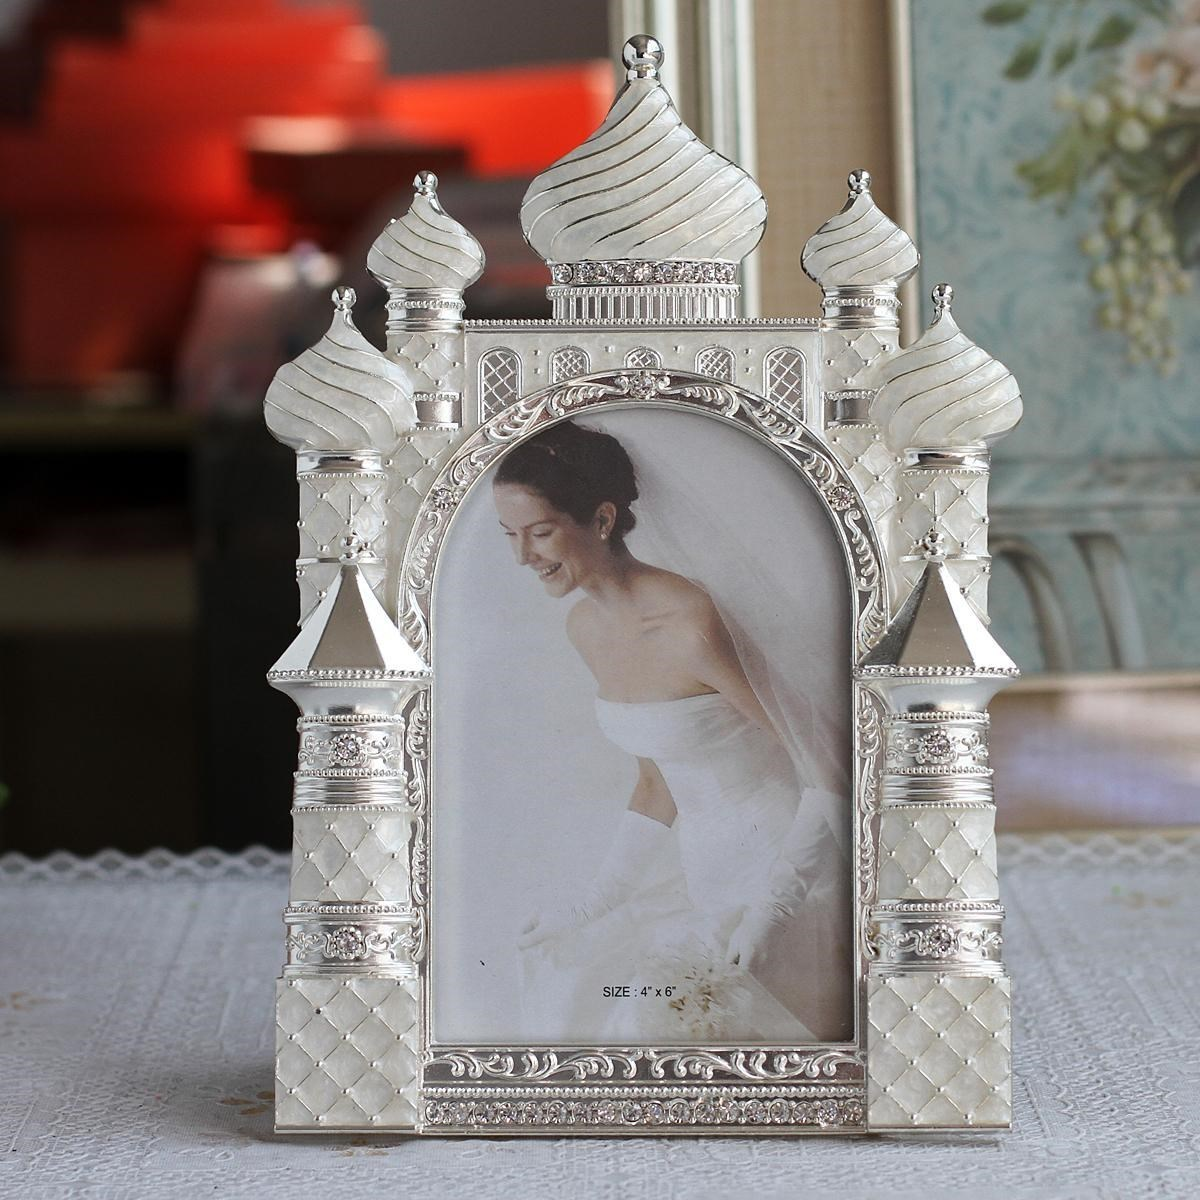 6 Inch Metal Photo Frame Castle Shape Room Home Ornament Wedding Party Decoration ElimElim 6 Inch Metal Photo Frame Castle Shape Room Home Ornament Wedding Party Decoration ElimElim